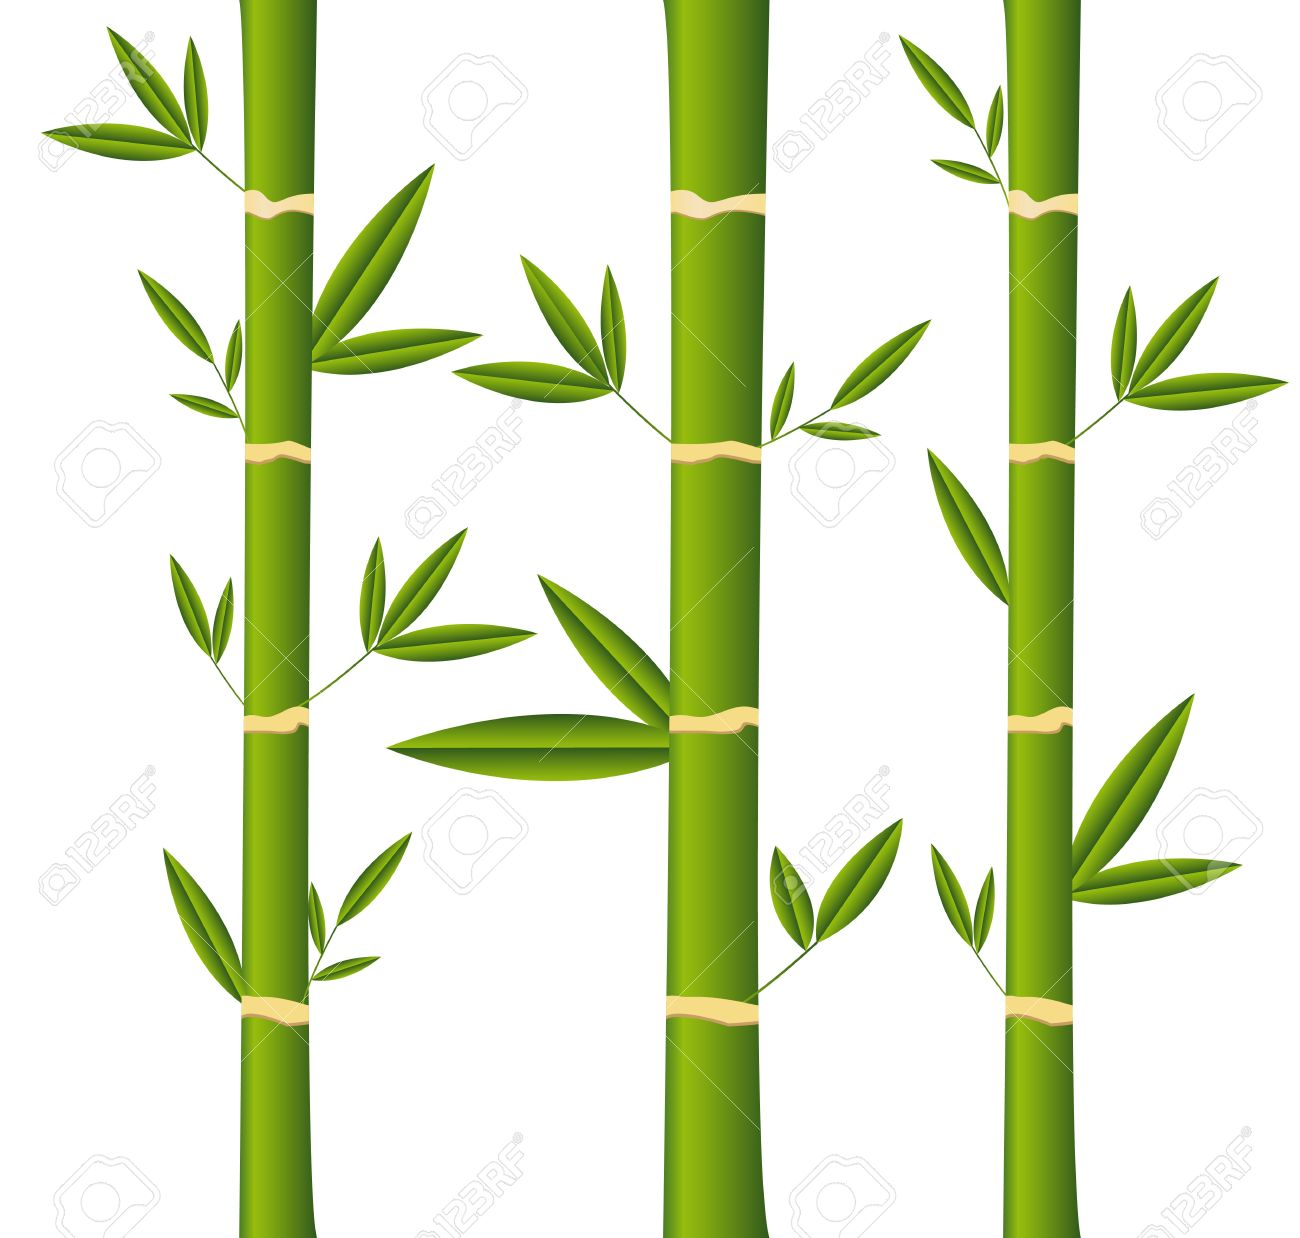 Bamboo Stick Clipart.